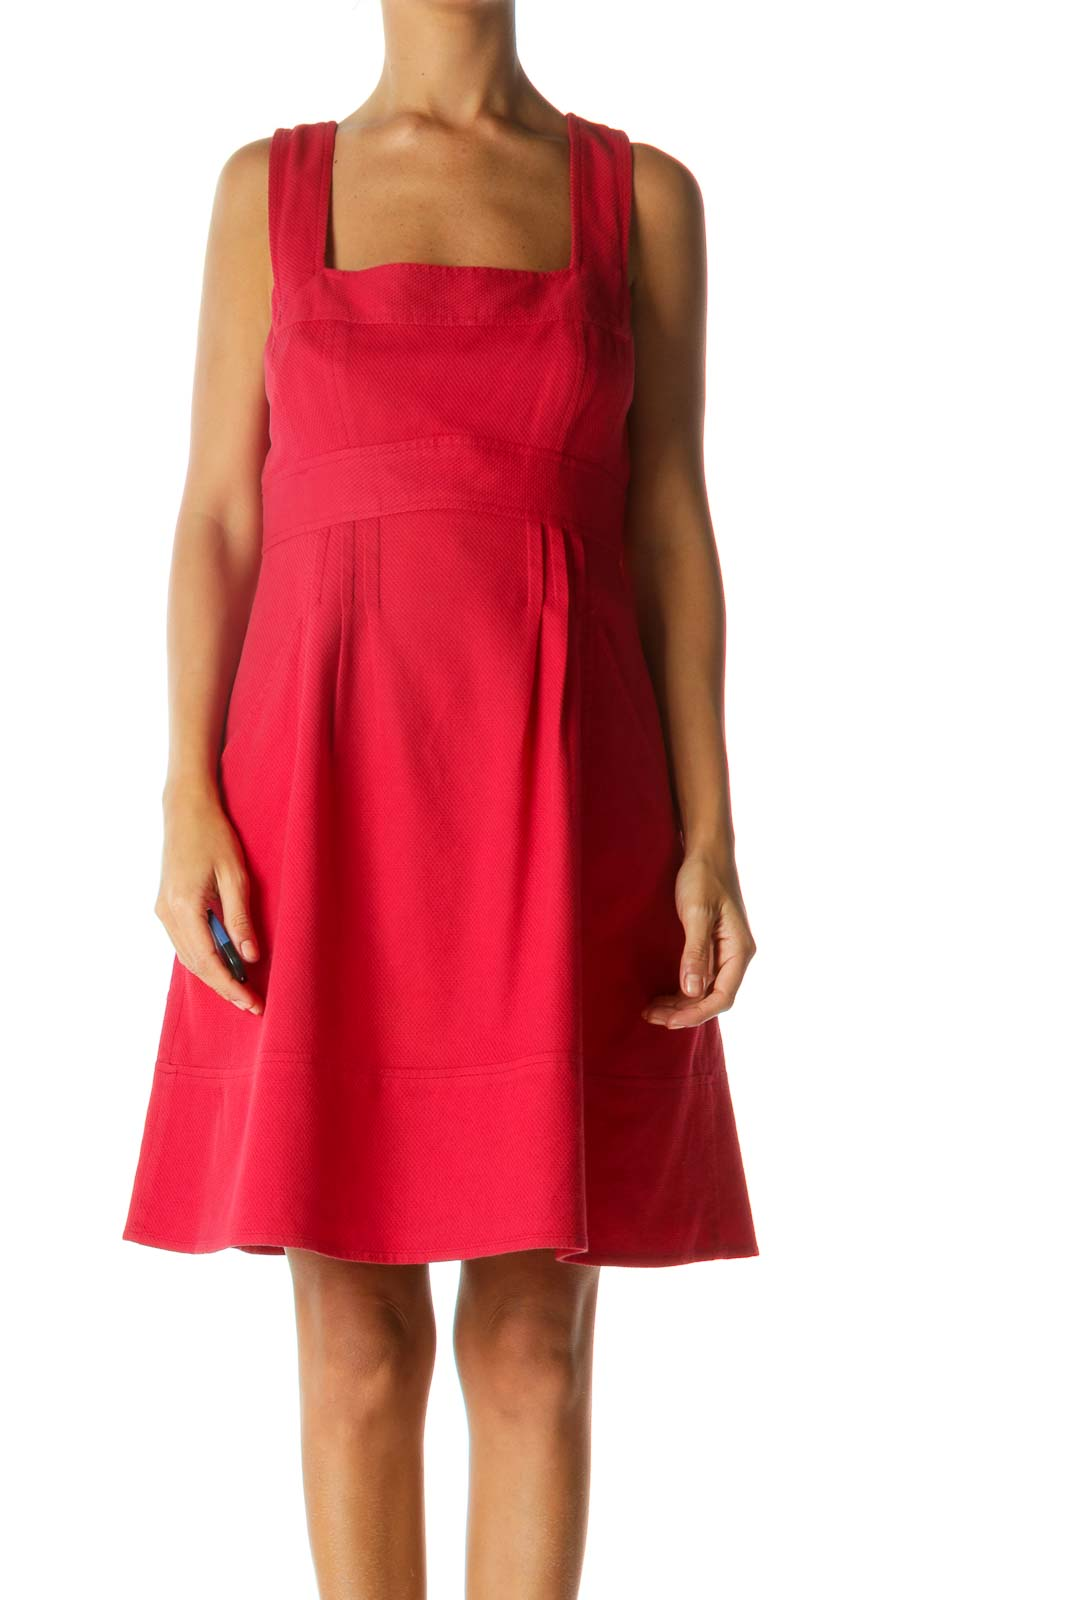 Red Square Neckline Pocketed Textured Day Dress Front